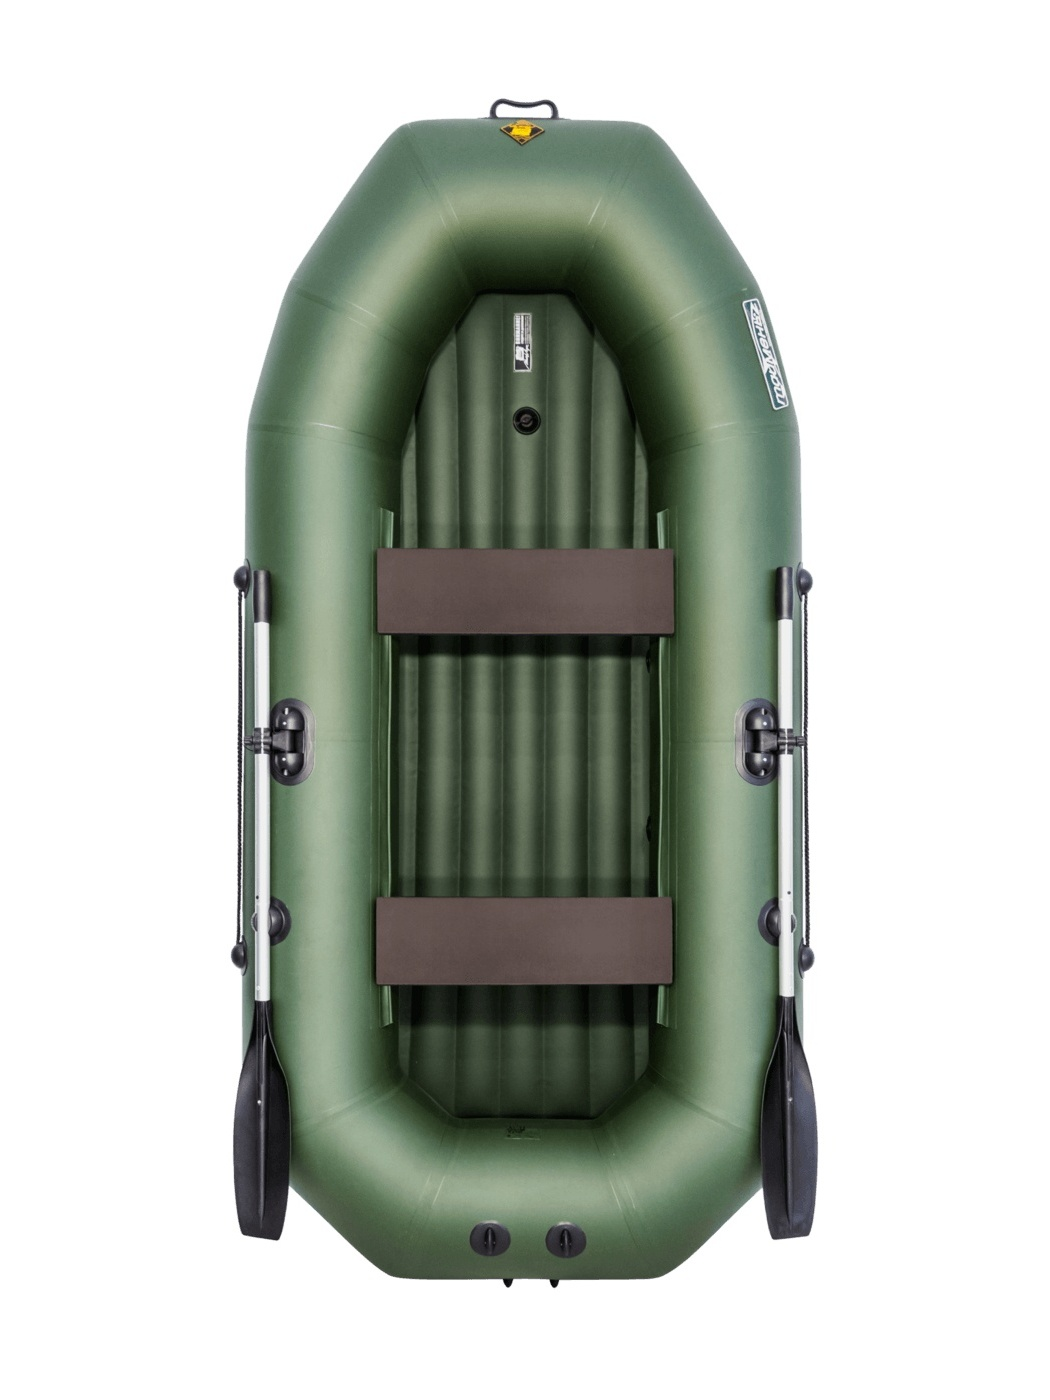 Inflatable Boat PVC, Tymen N 270 ND, Green 4603725300262